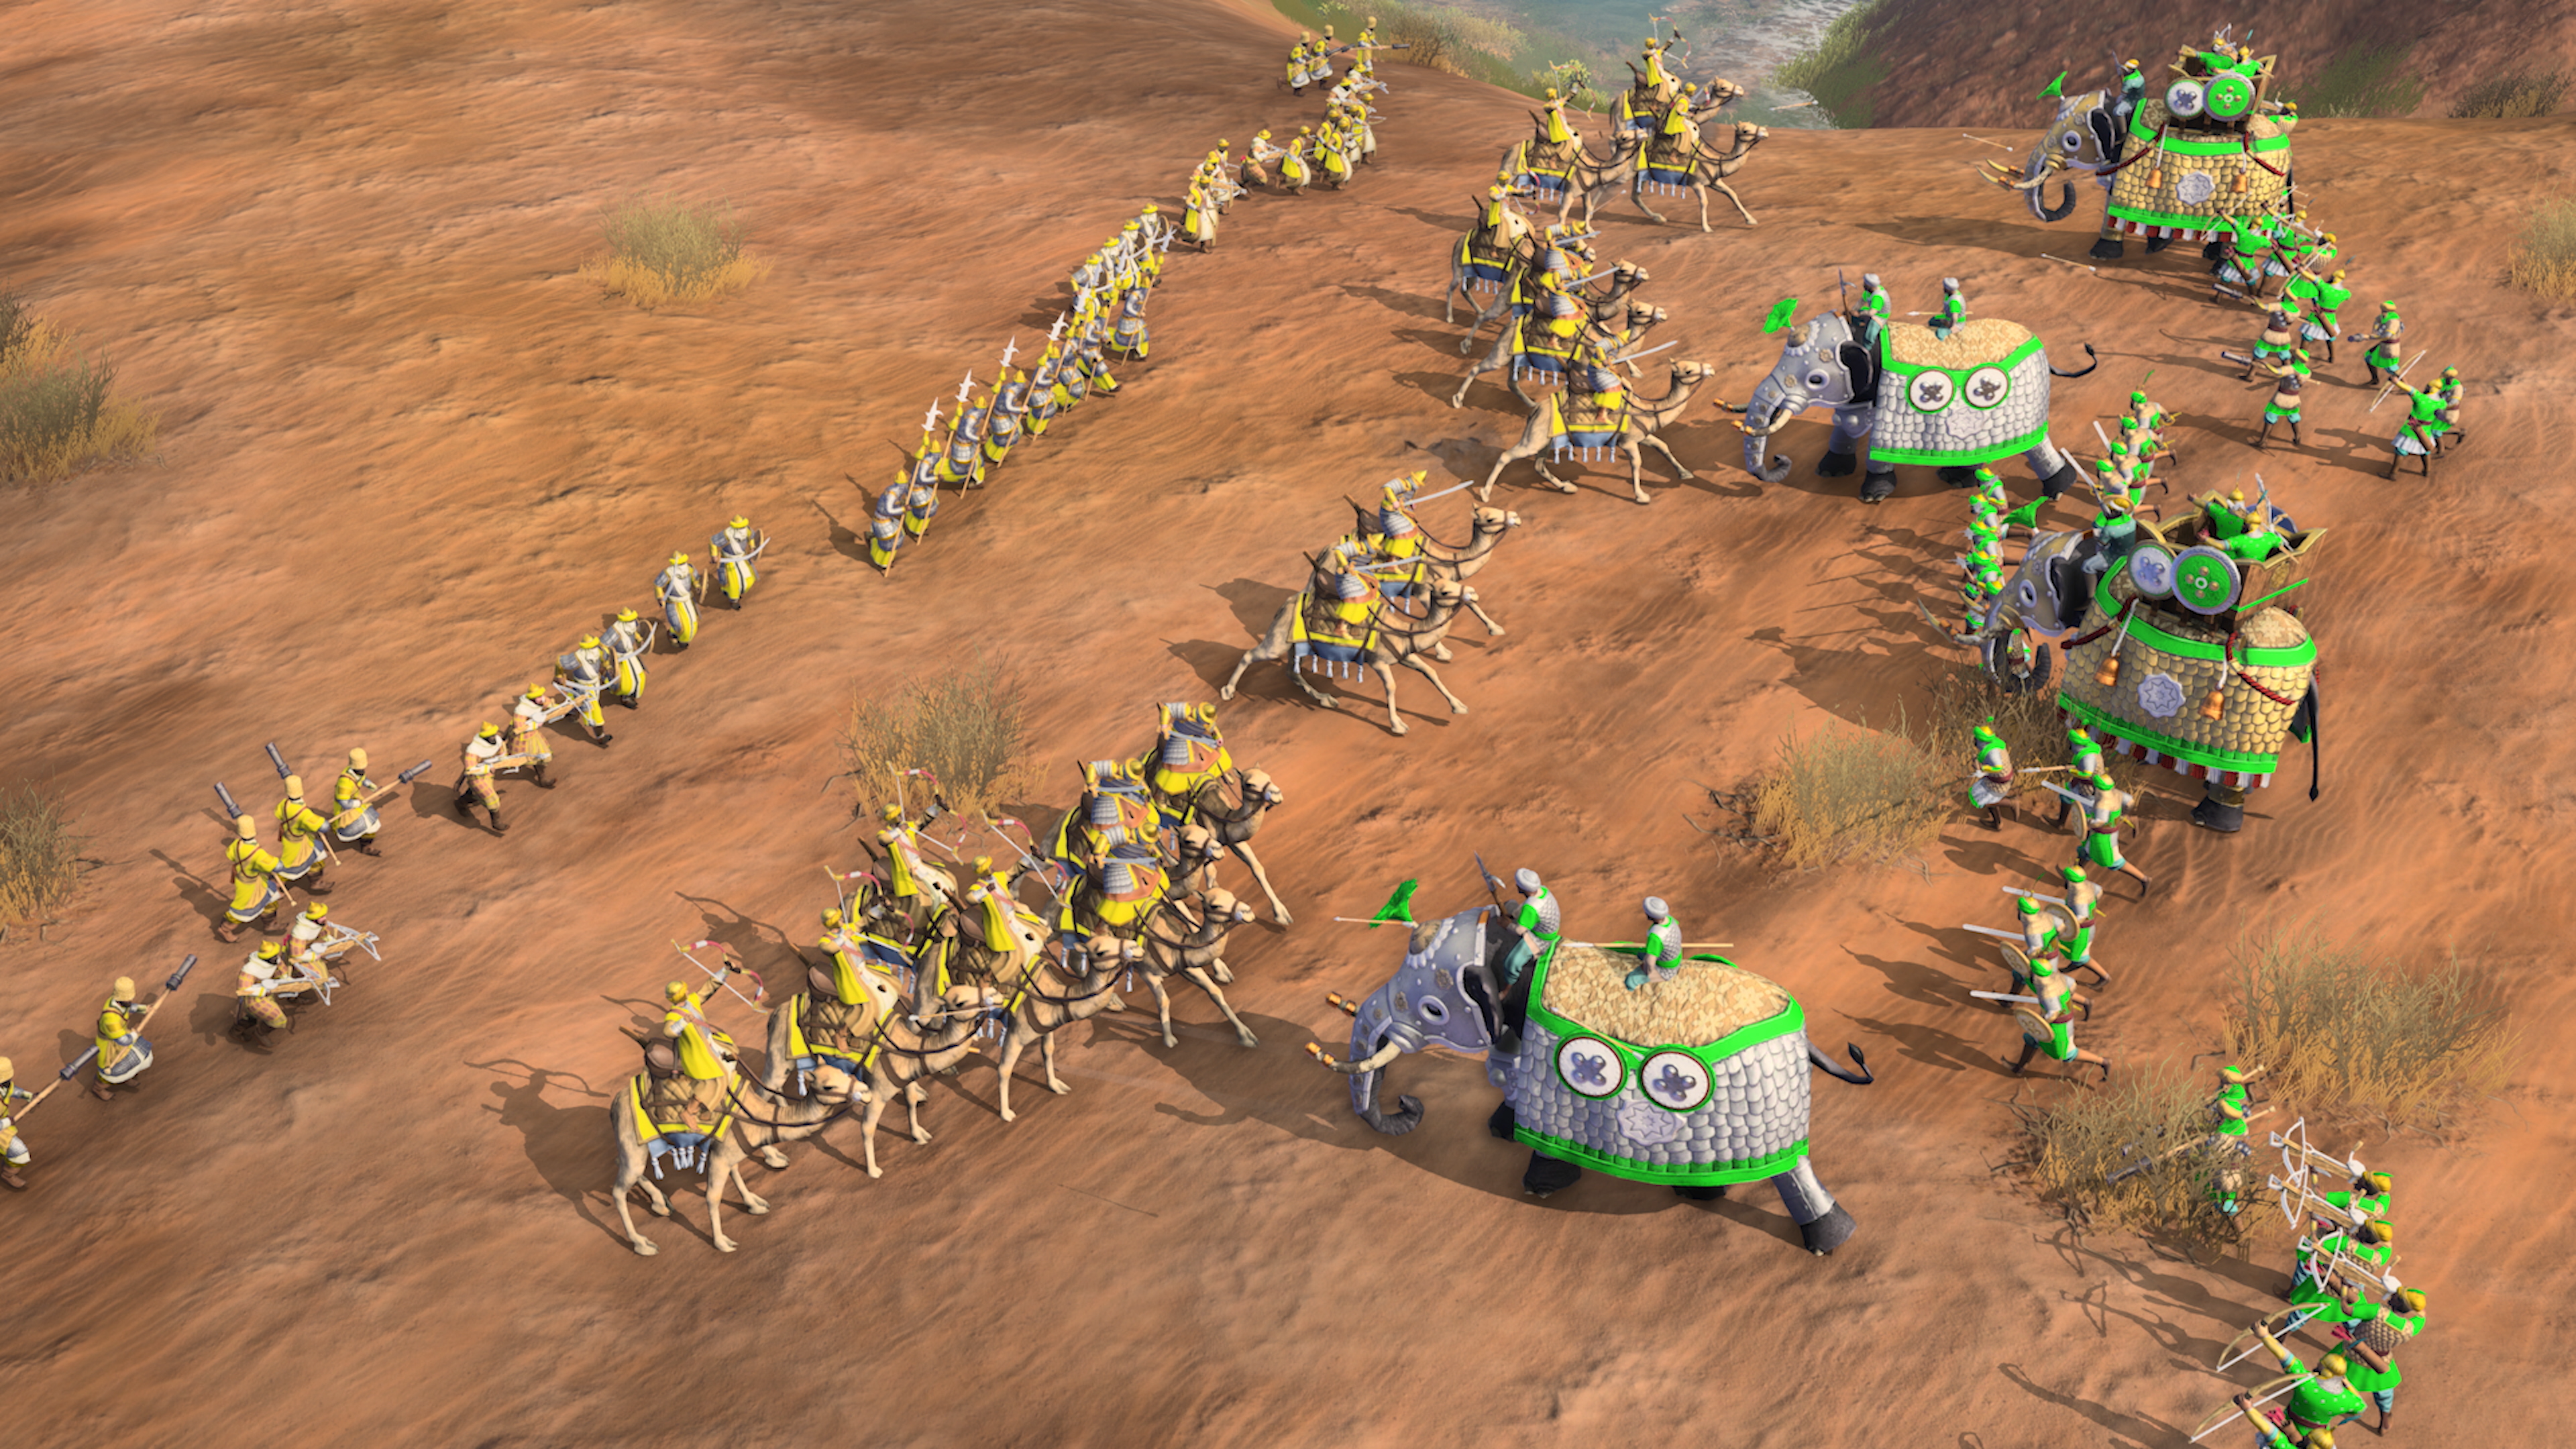 https://static.ageofempires.com/aoe/wp-content/uploads/2021/06/5-Side-view-of-Delhi-and-Abbasids-about-to-clash.png